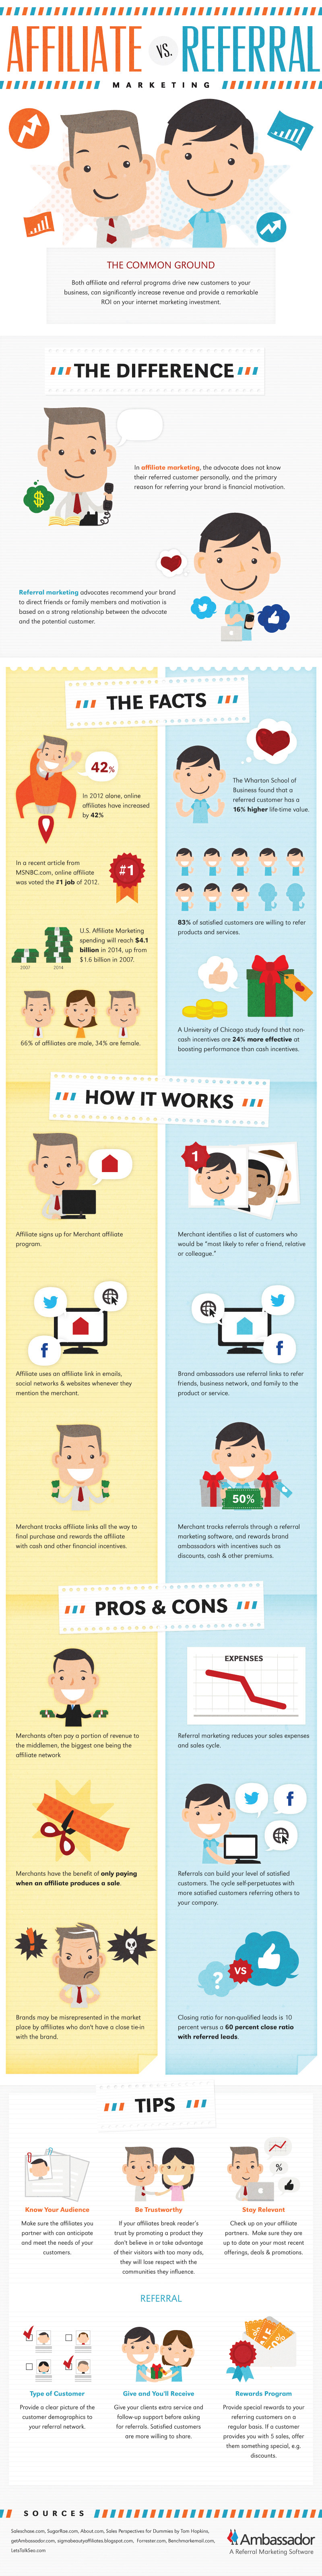 Affiliate-Marketing-vs-Referral